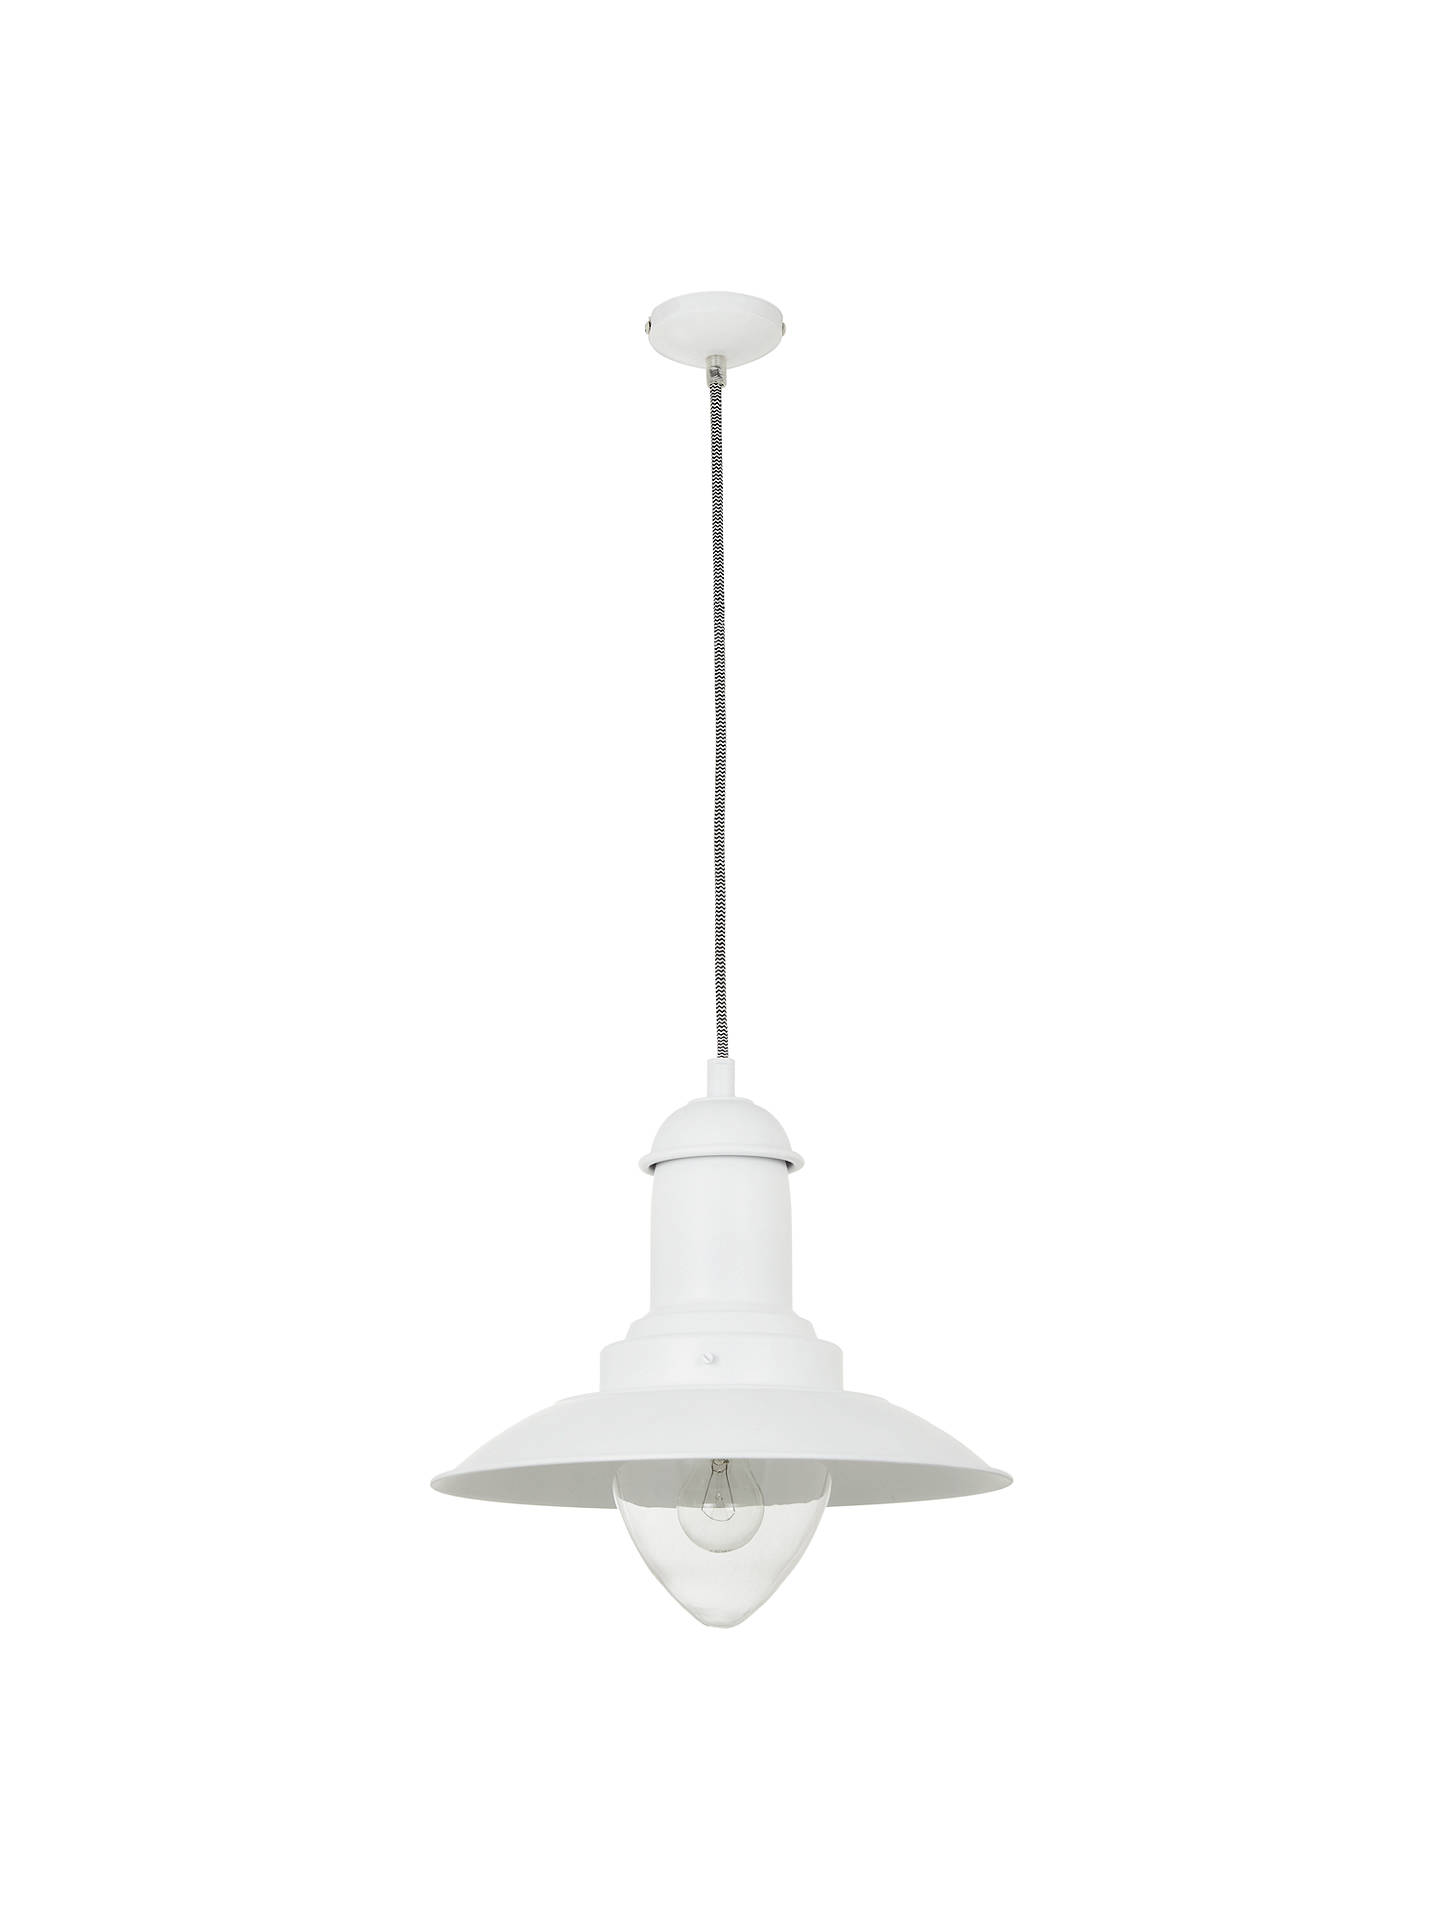 BuyJohn Lewis & Partners Barrington Ceiling Pendant, White Online at johnlewis.com